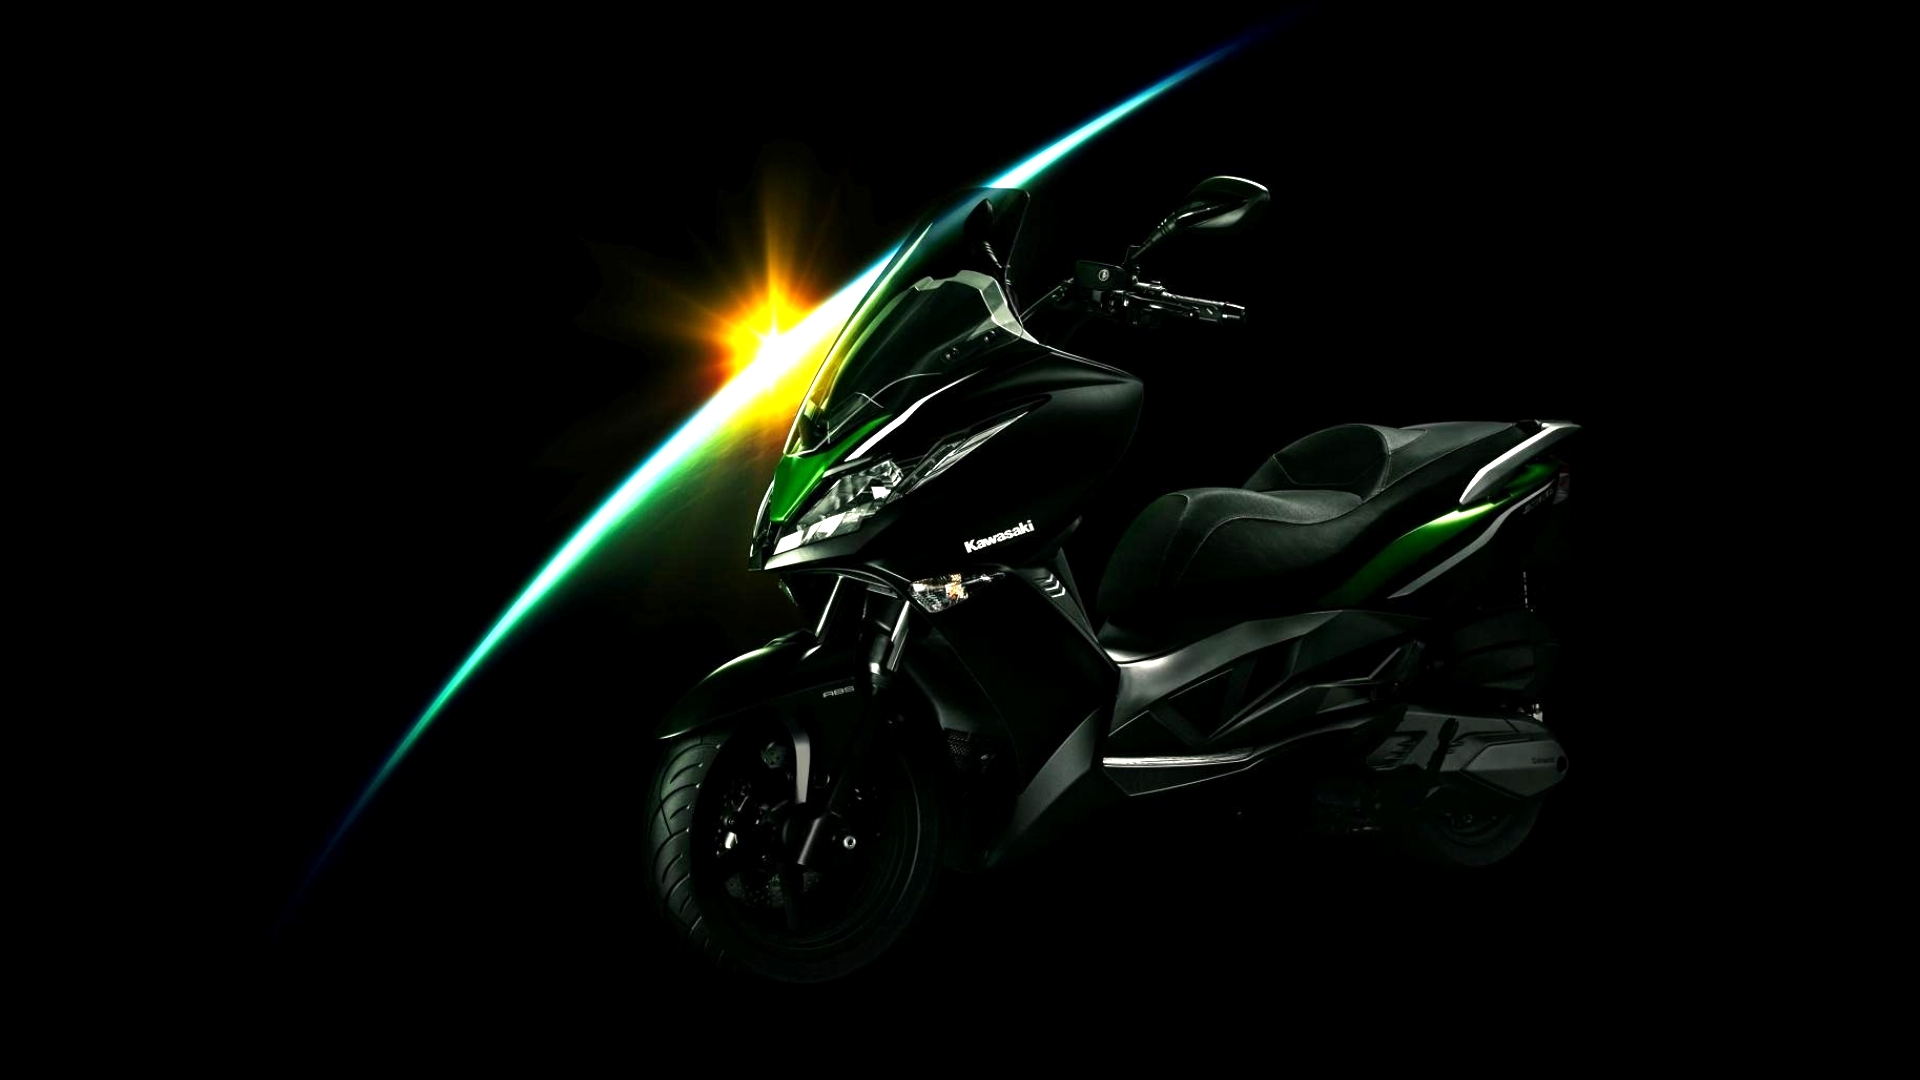 http://s1.cdn.autoevolution.com/images/news/gallery/1080/first-pictures-of-the-kawasaki-j300-maxi-scooter-dedicated-forum-goes-live-1080p-1.jpg?1381249569